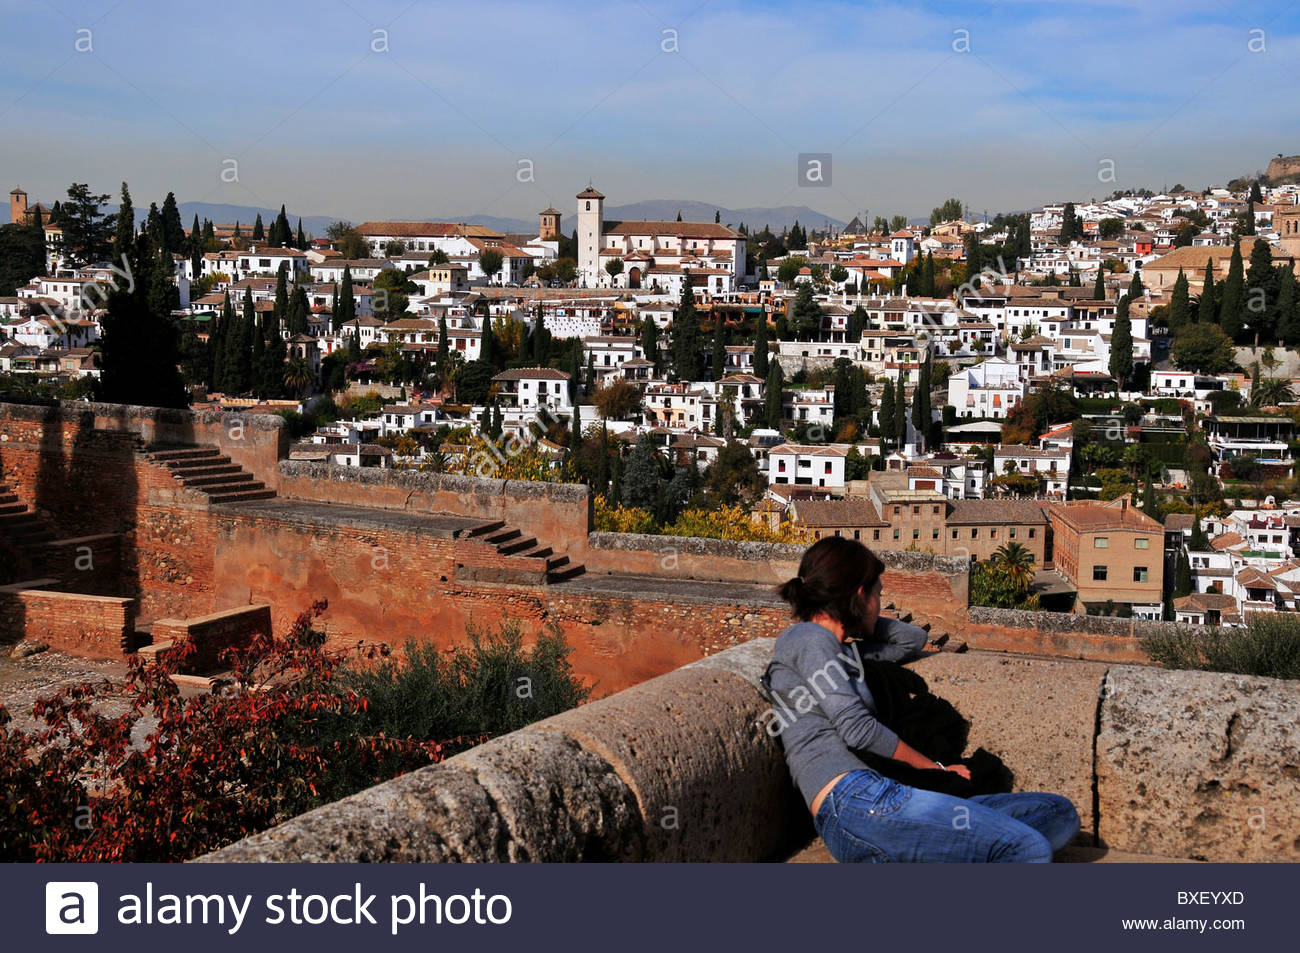 A young woman sits on the walls of the Alhambra and looks at the old quarter of El Albaicin on the hill opposite. - Stock Image